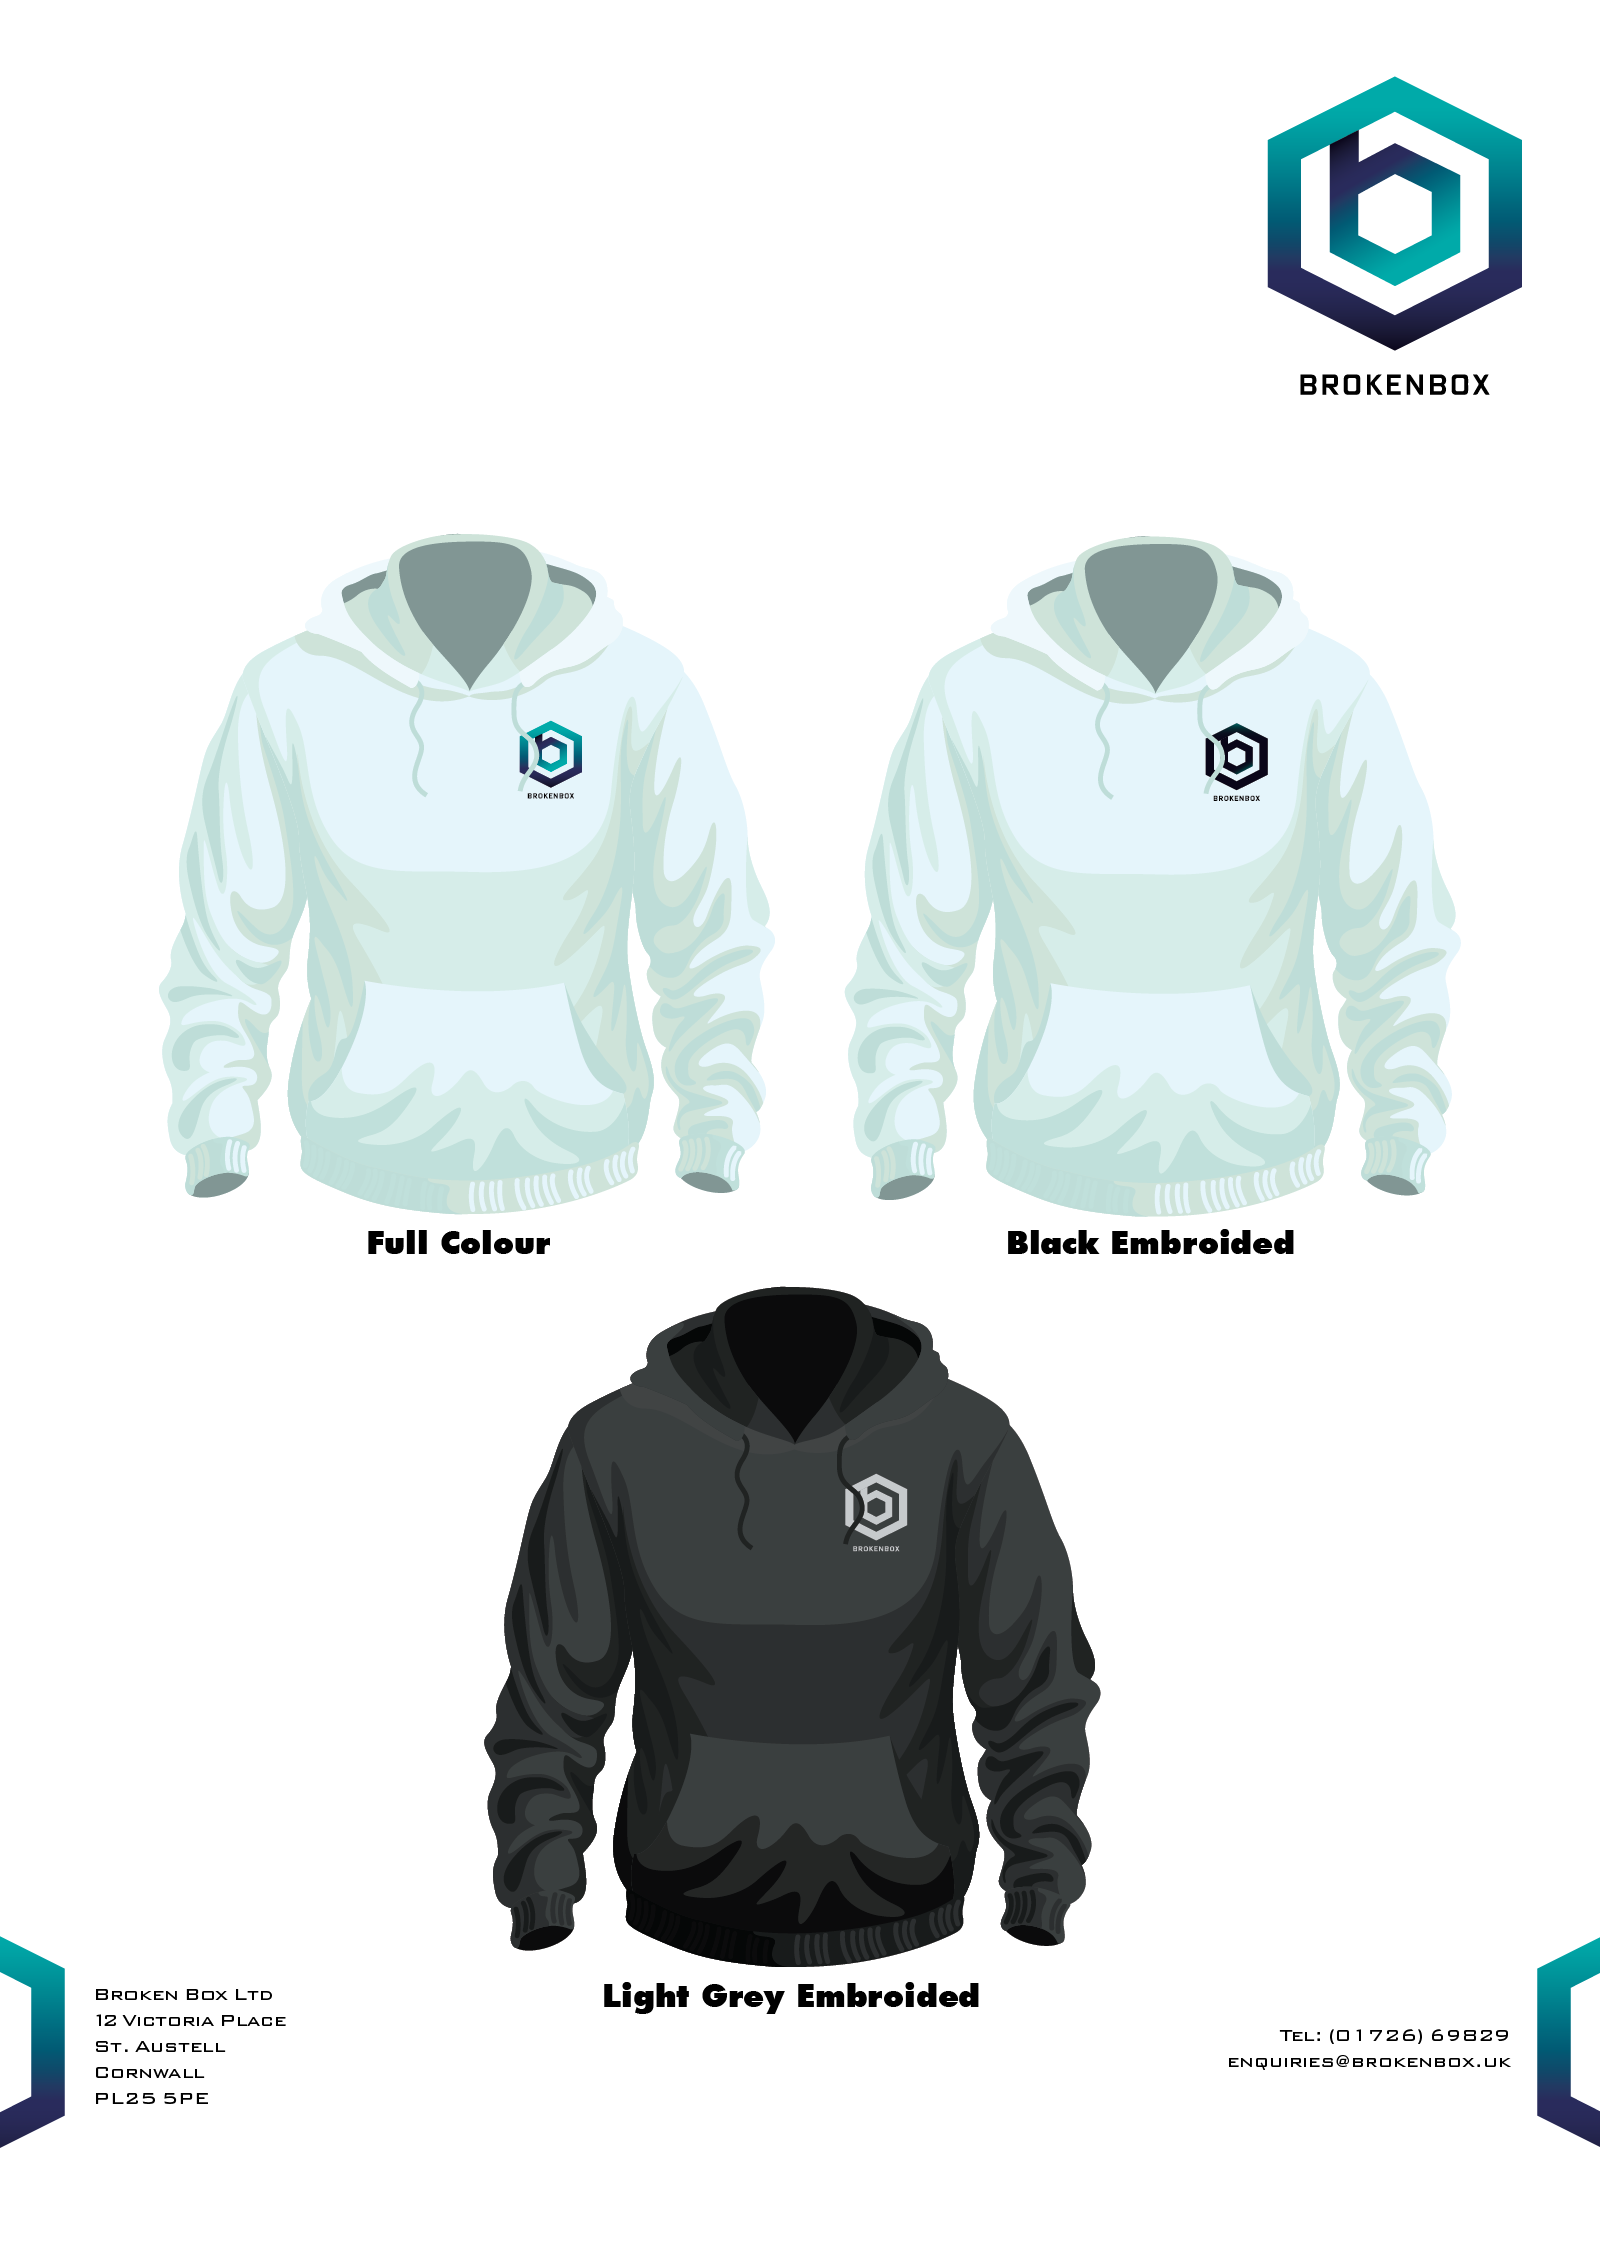 brokenbox_branding_clothing_hoodies